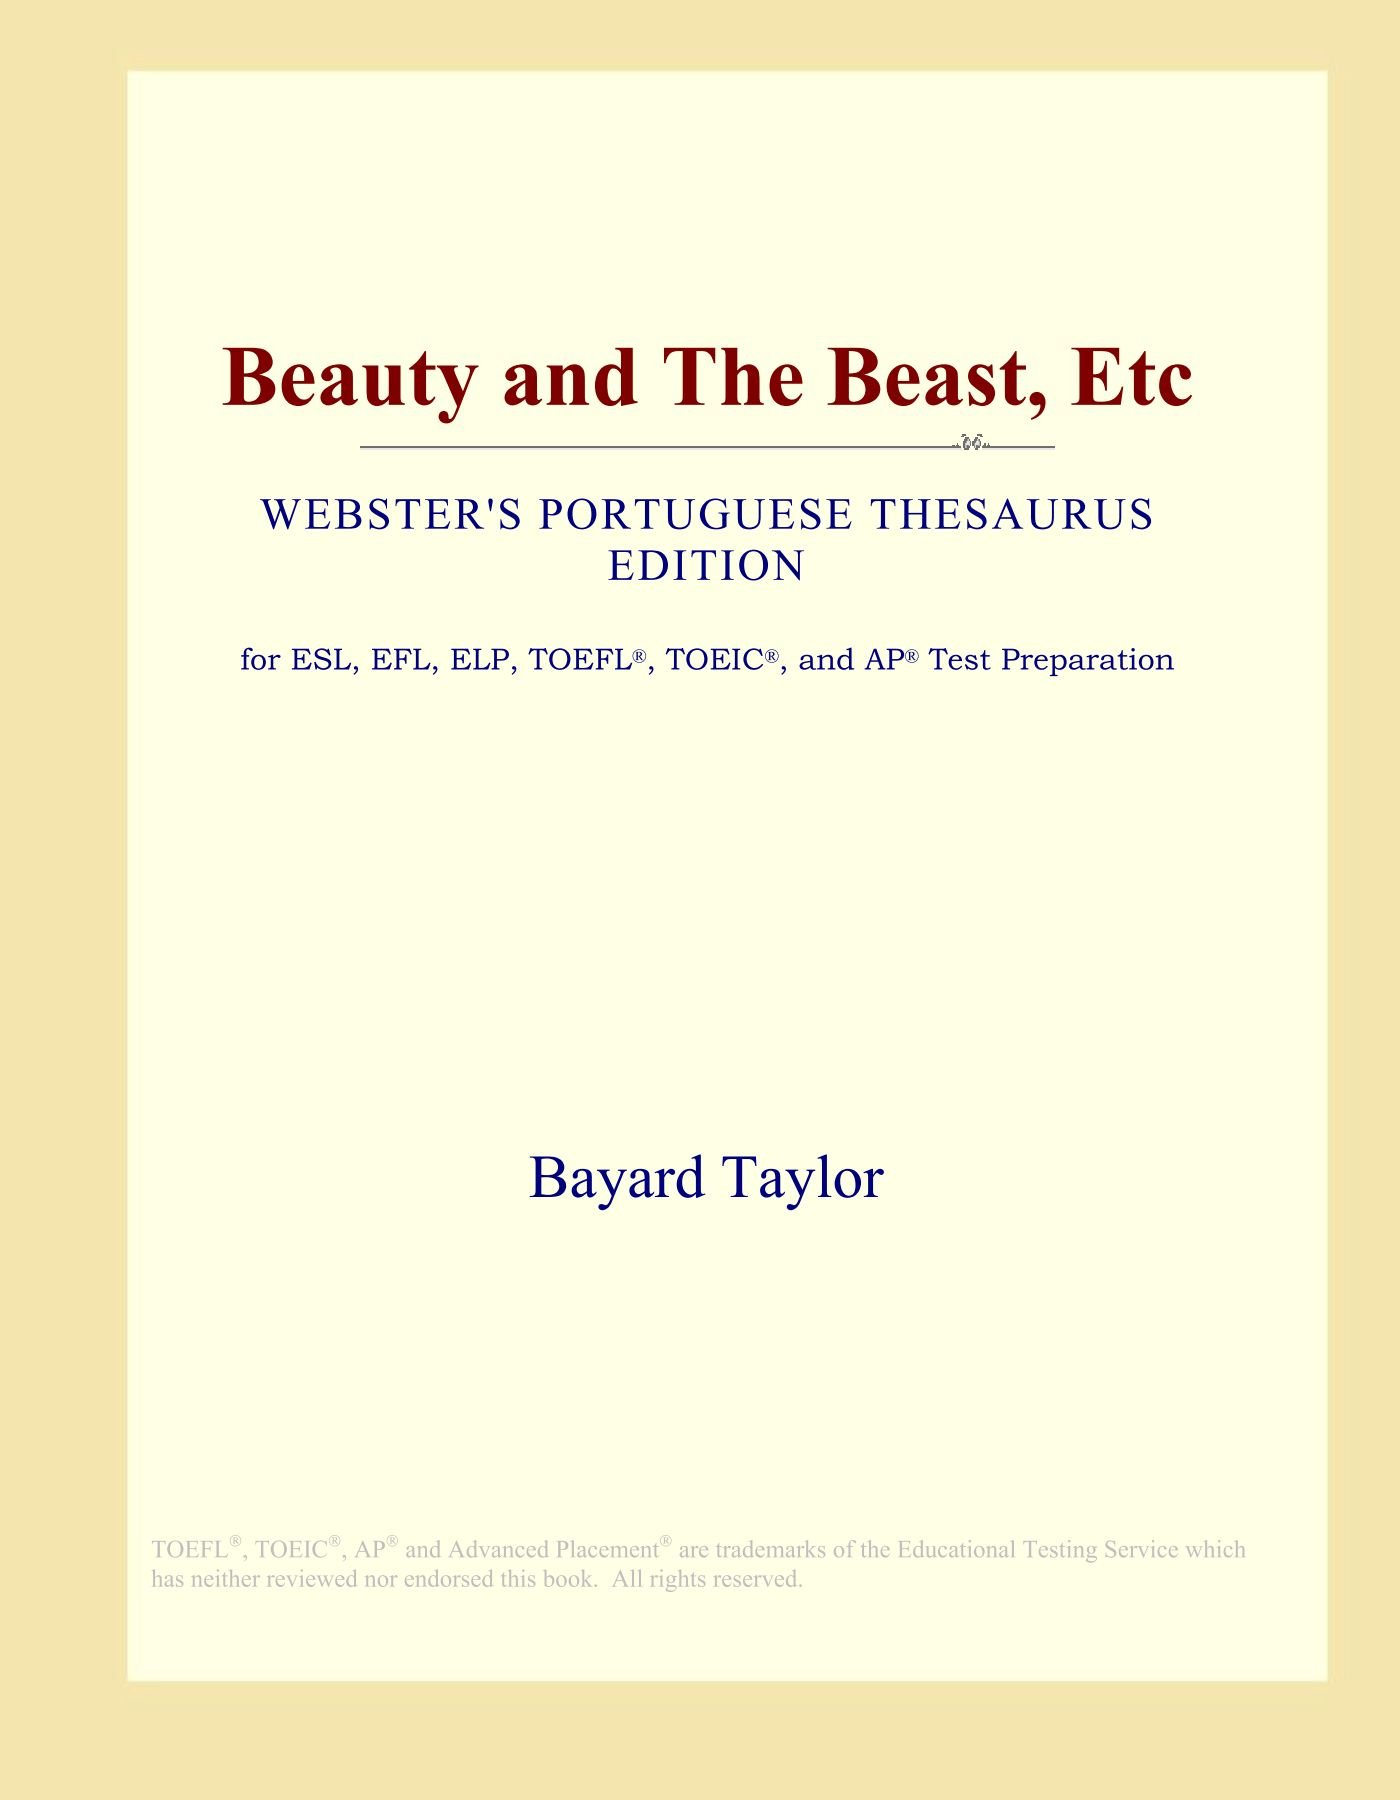 Download Beauty and The Beast, Etc (Webster's Portuguese Thesaurus Edition) pdf